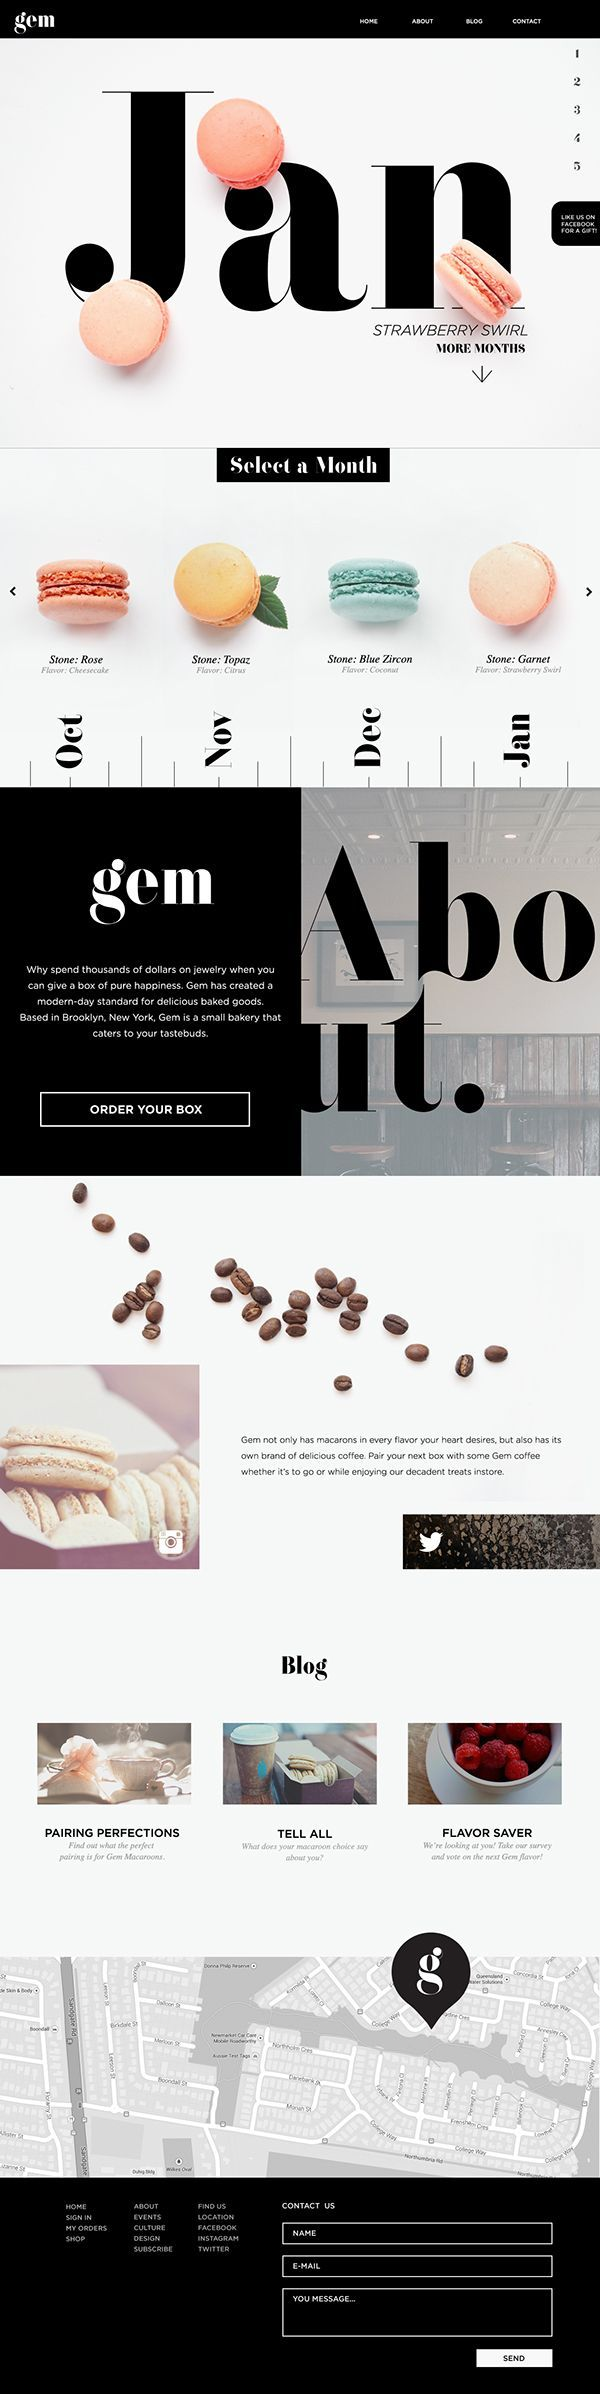 Gem Bakery on Branding Served